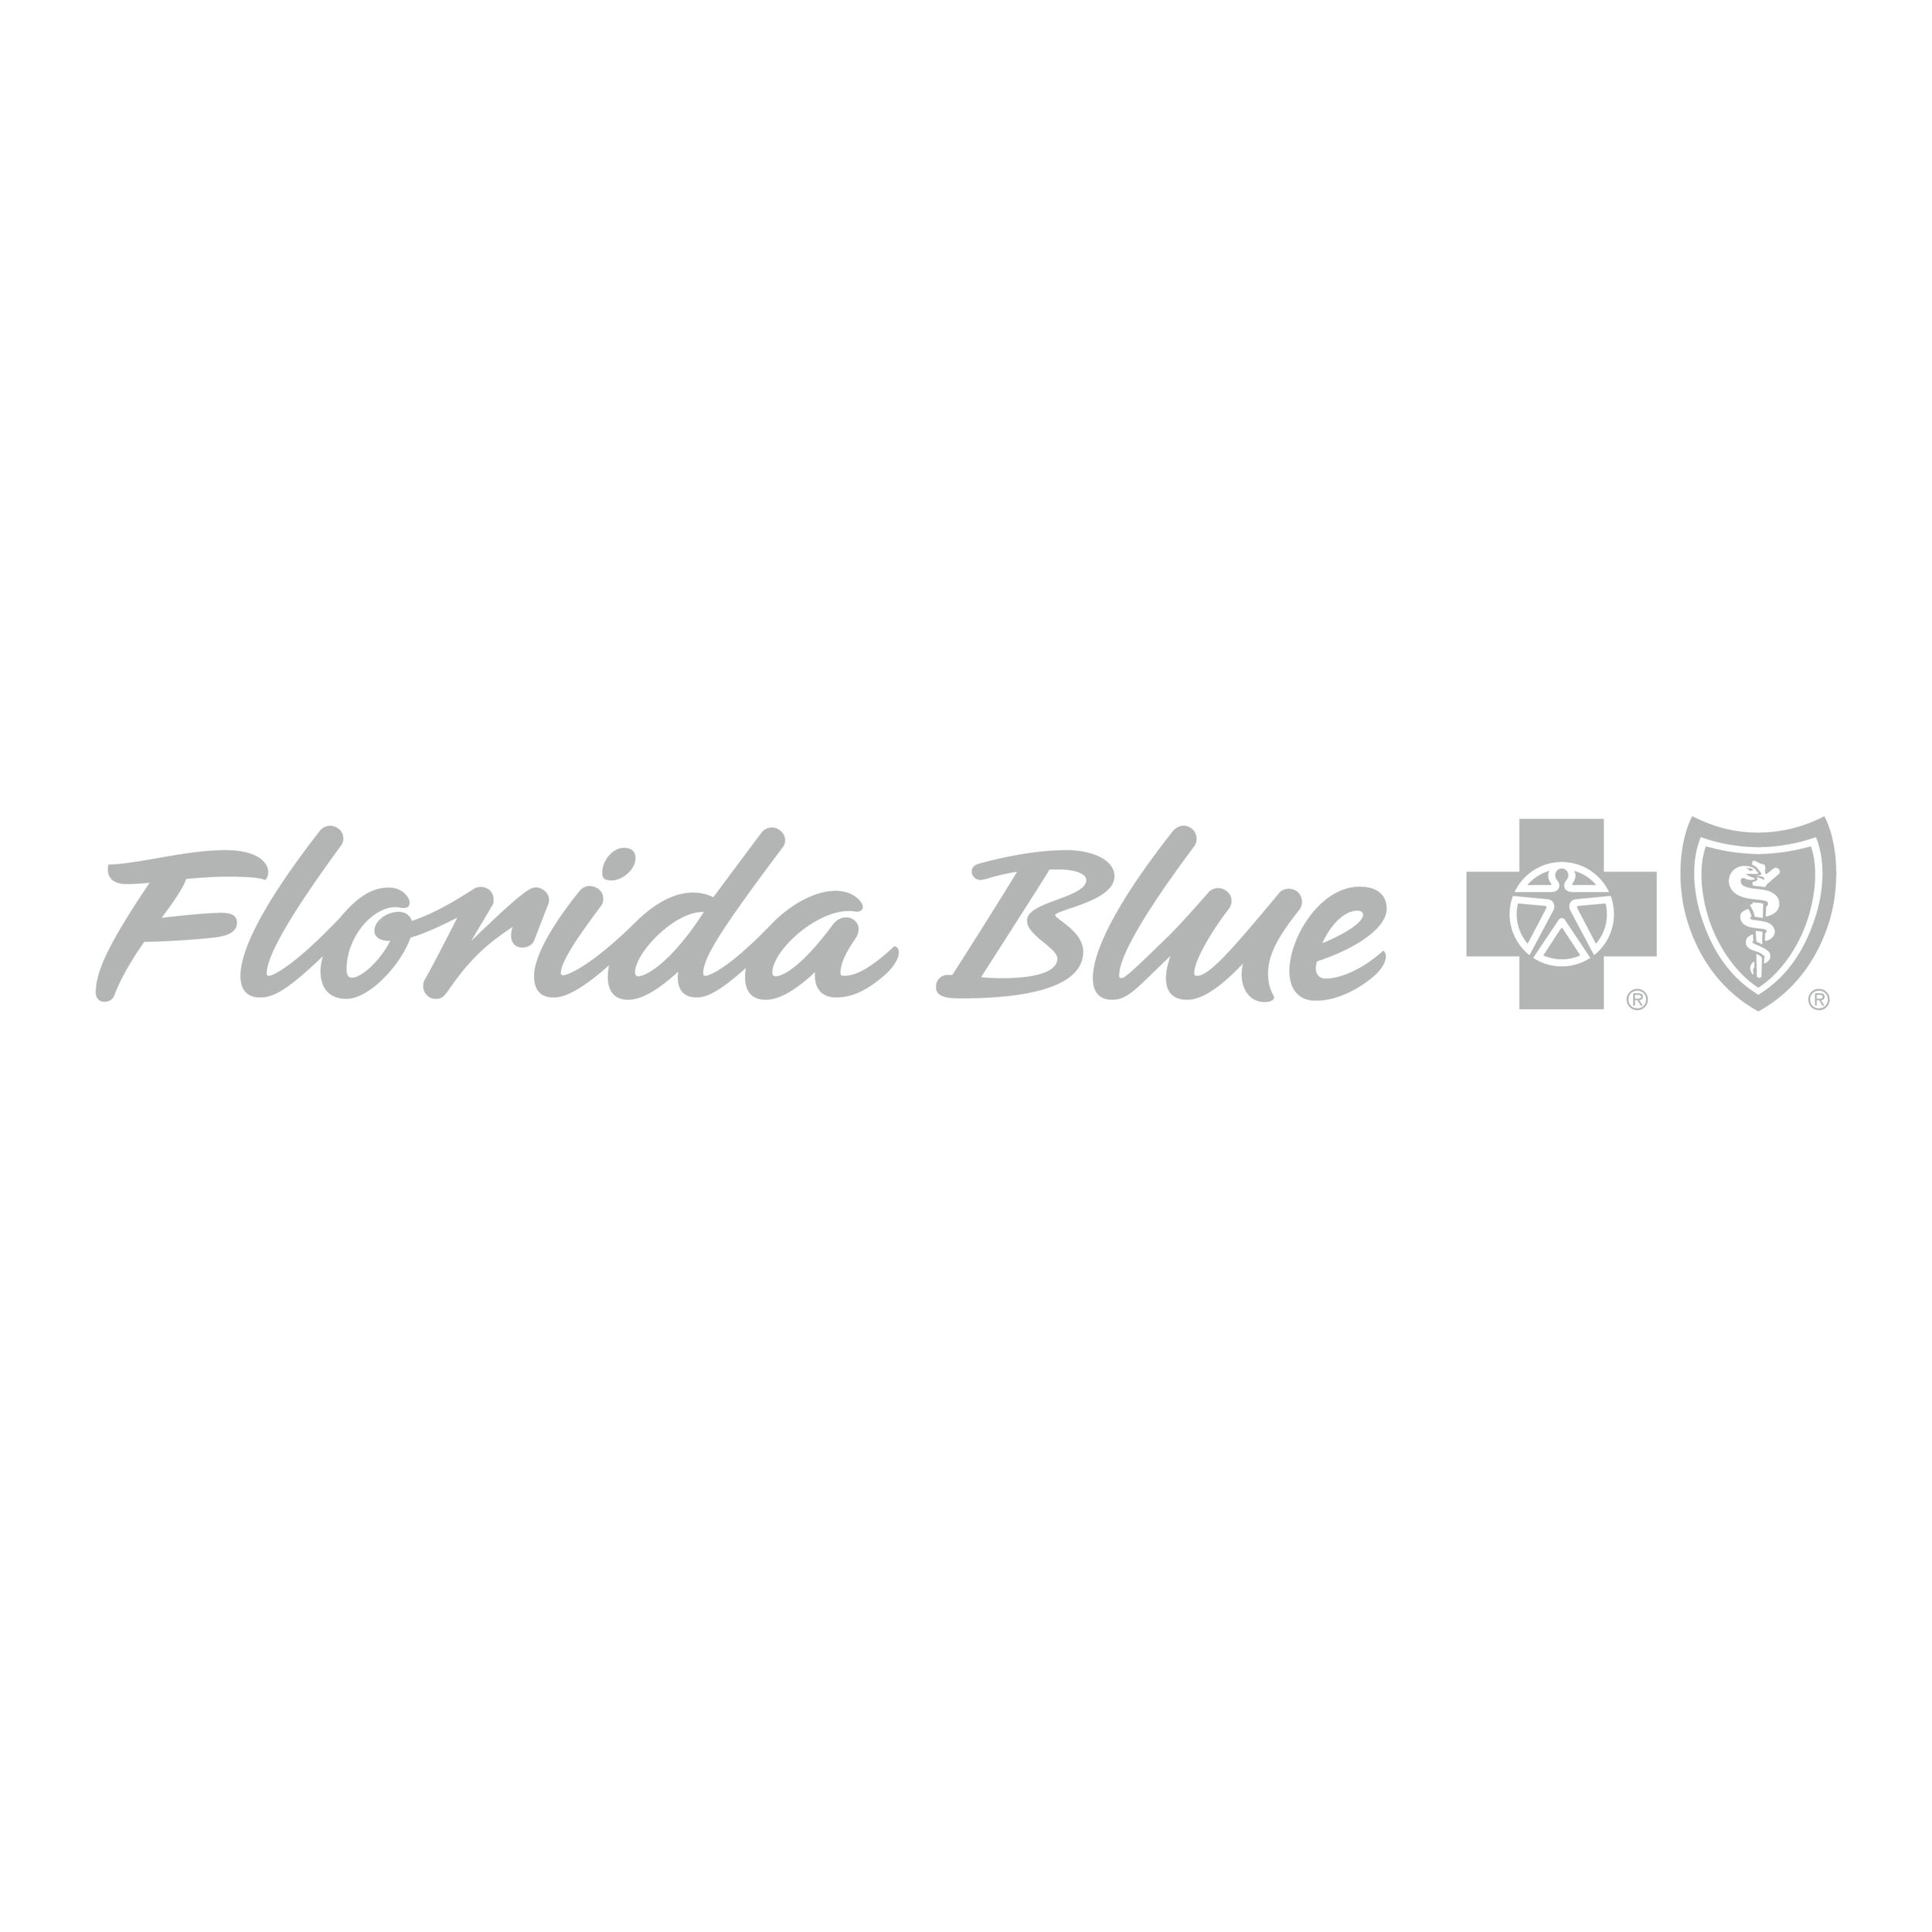 Florida Blue.png